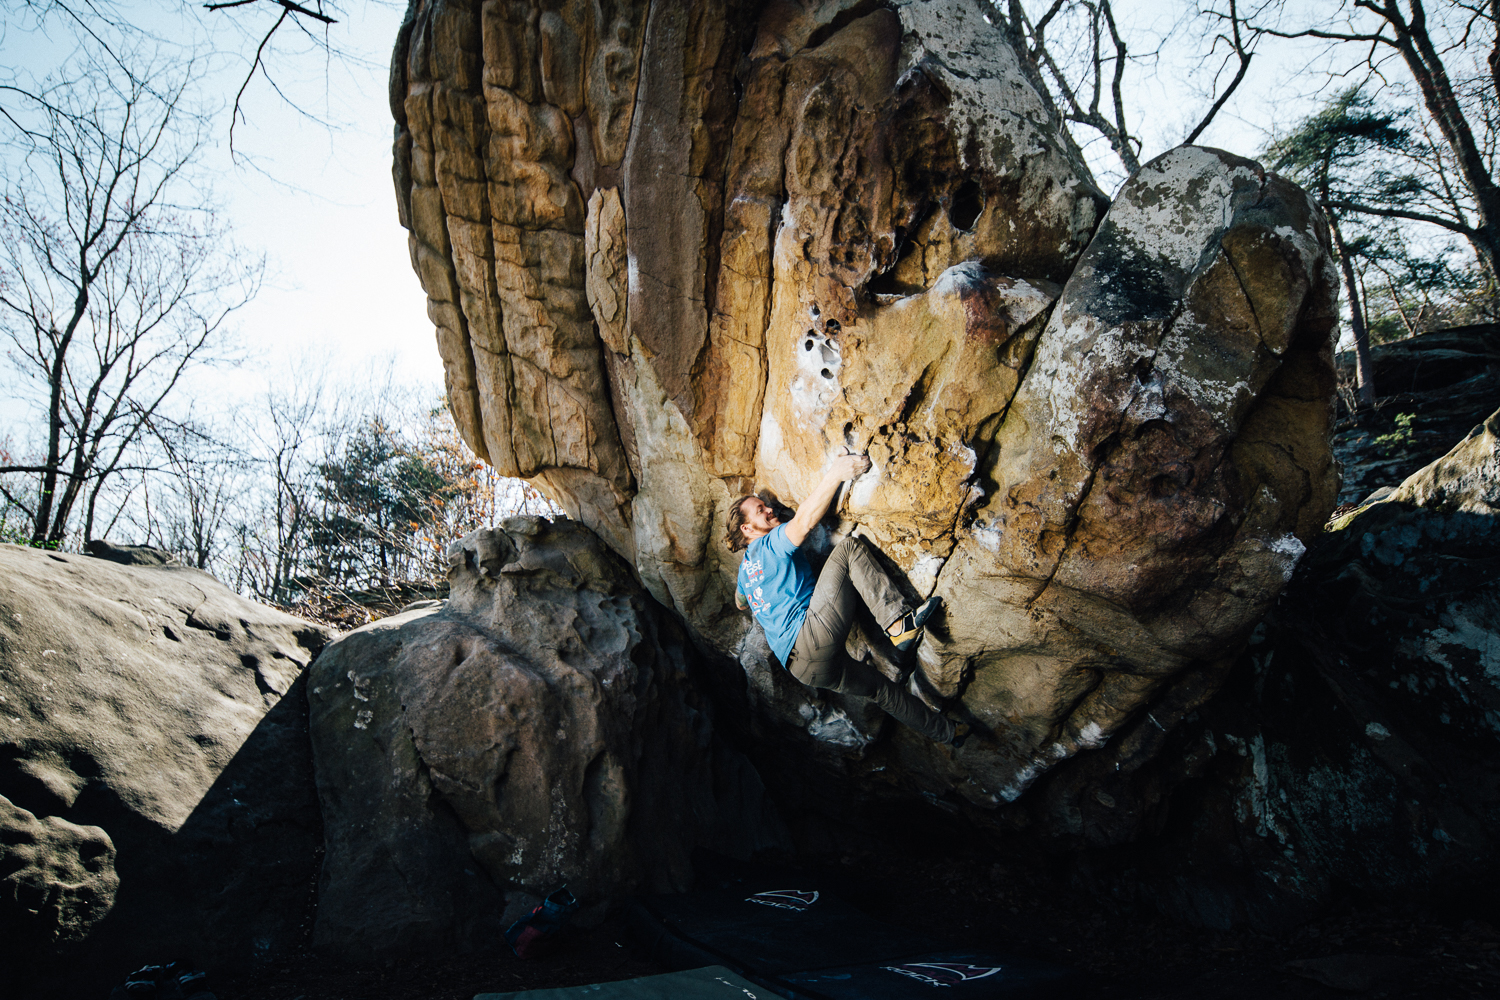 Cody Grodzki warming down after a successful day at Stone Fort, Chattanooga, Tennessee.